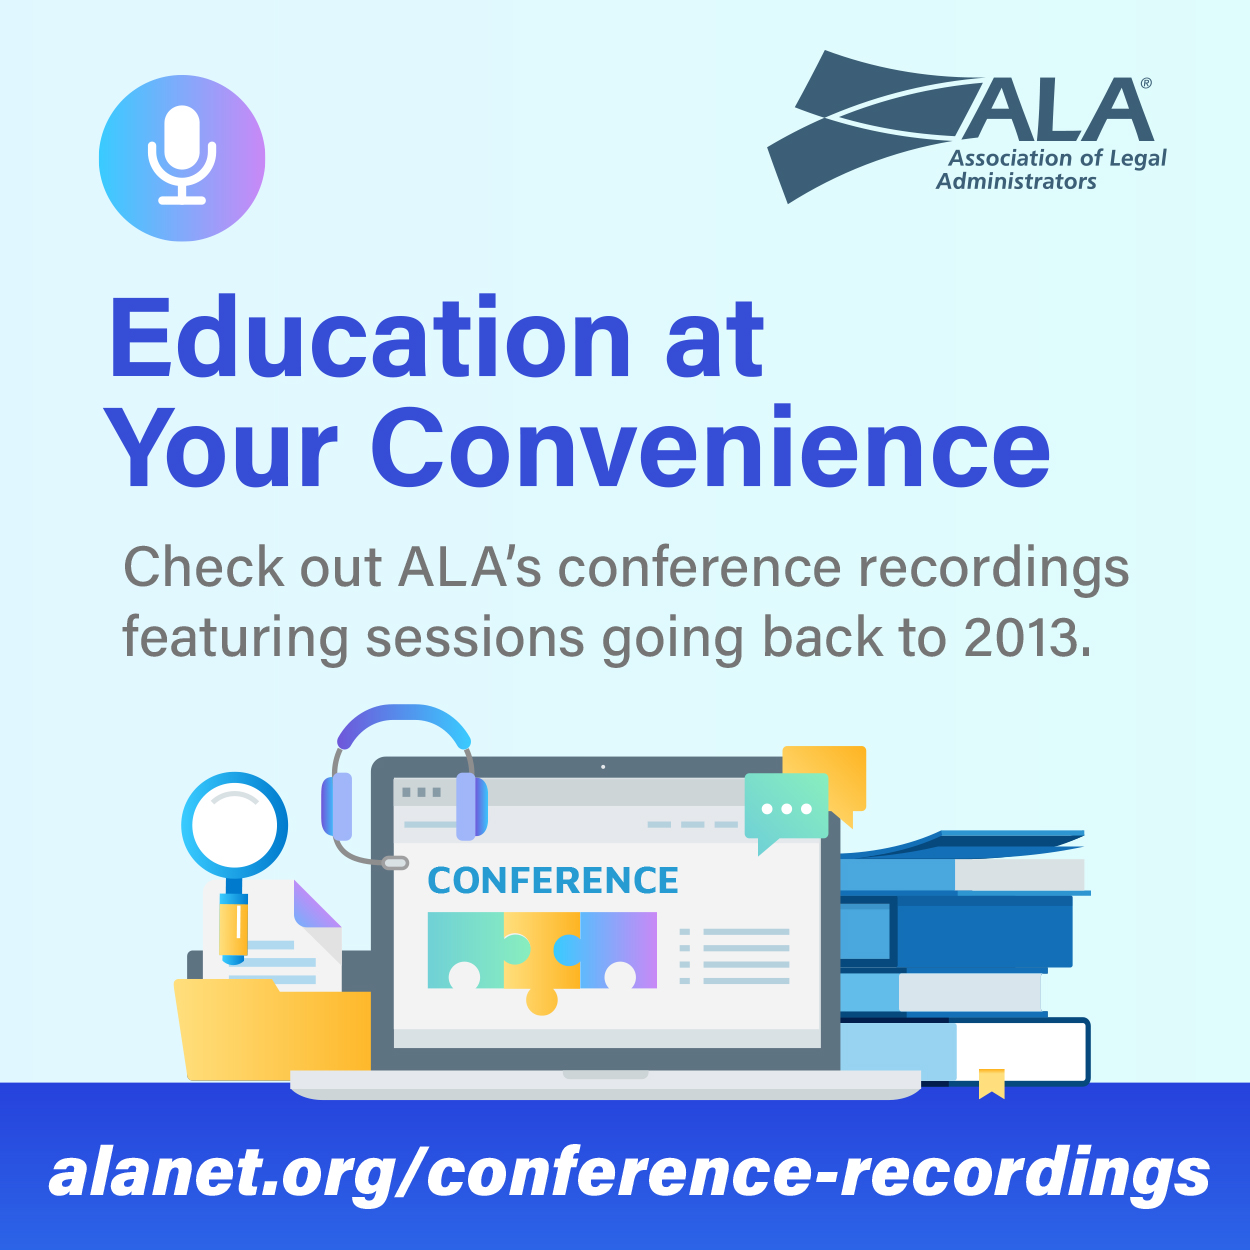 ALA Conference Recordings